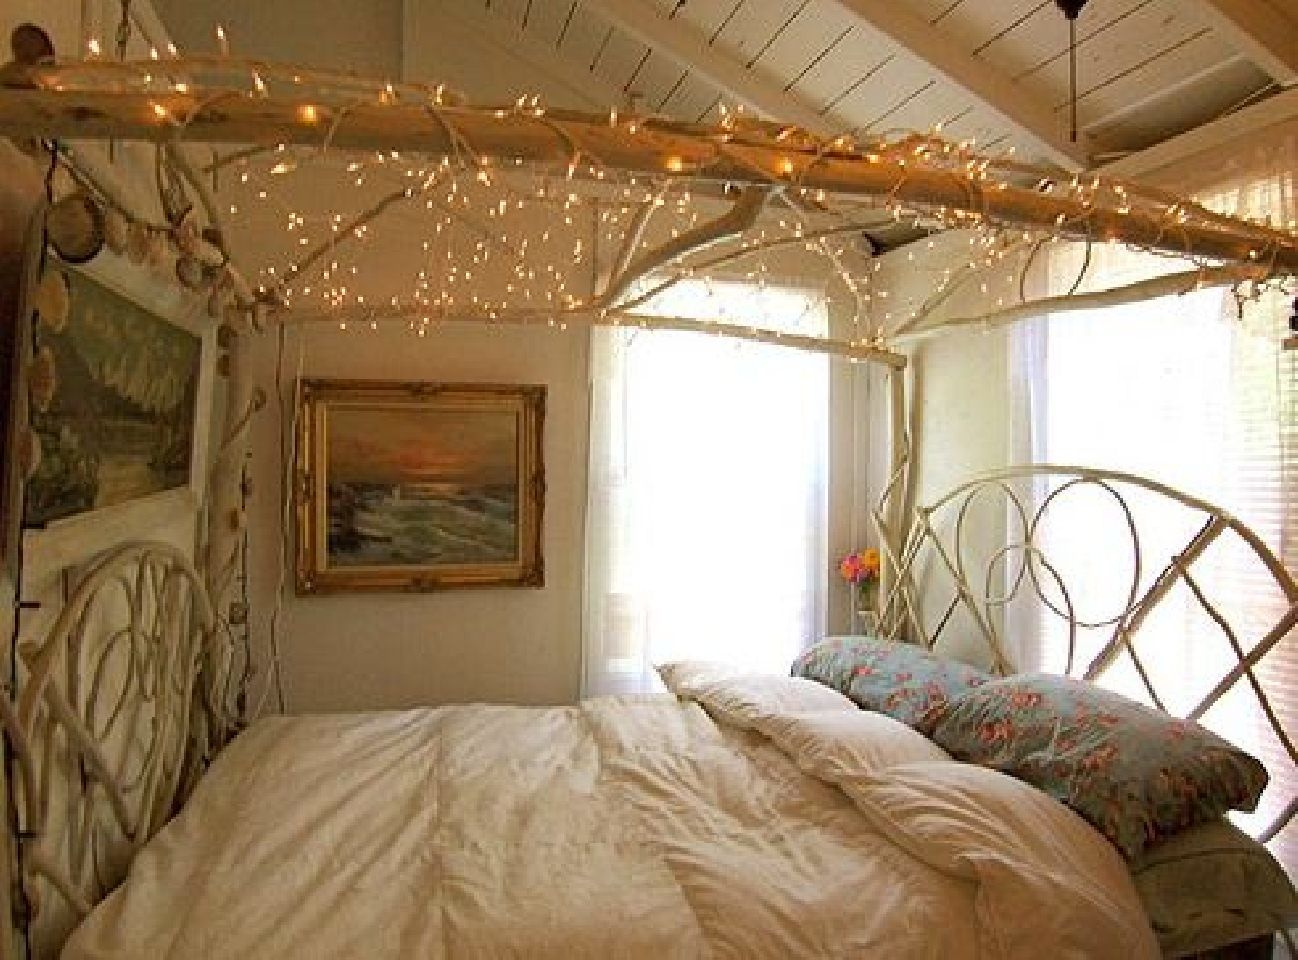 Canopy bed with lights - Related